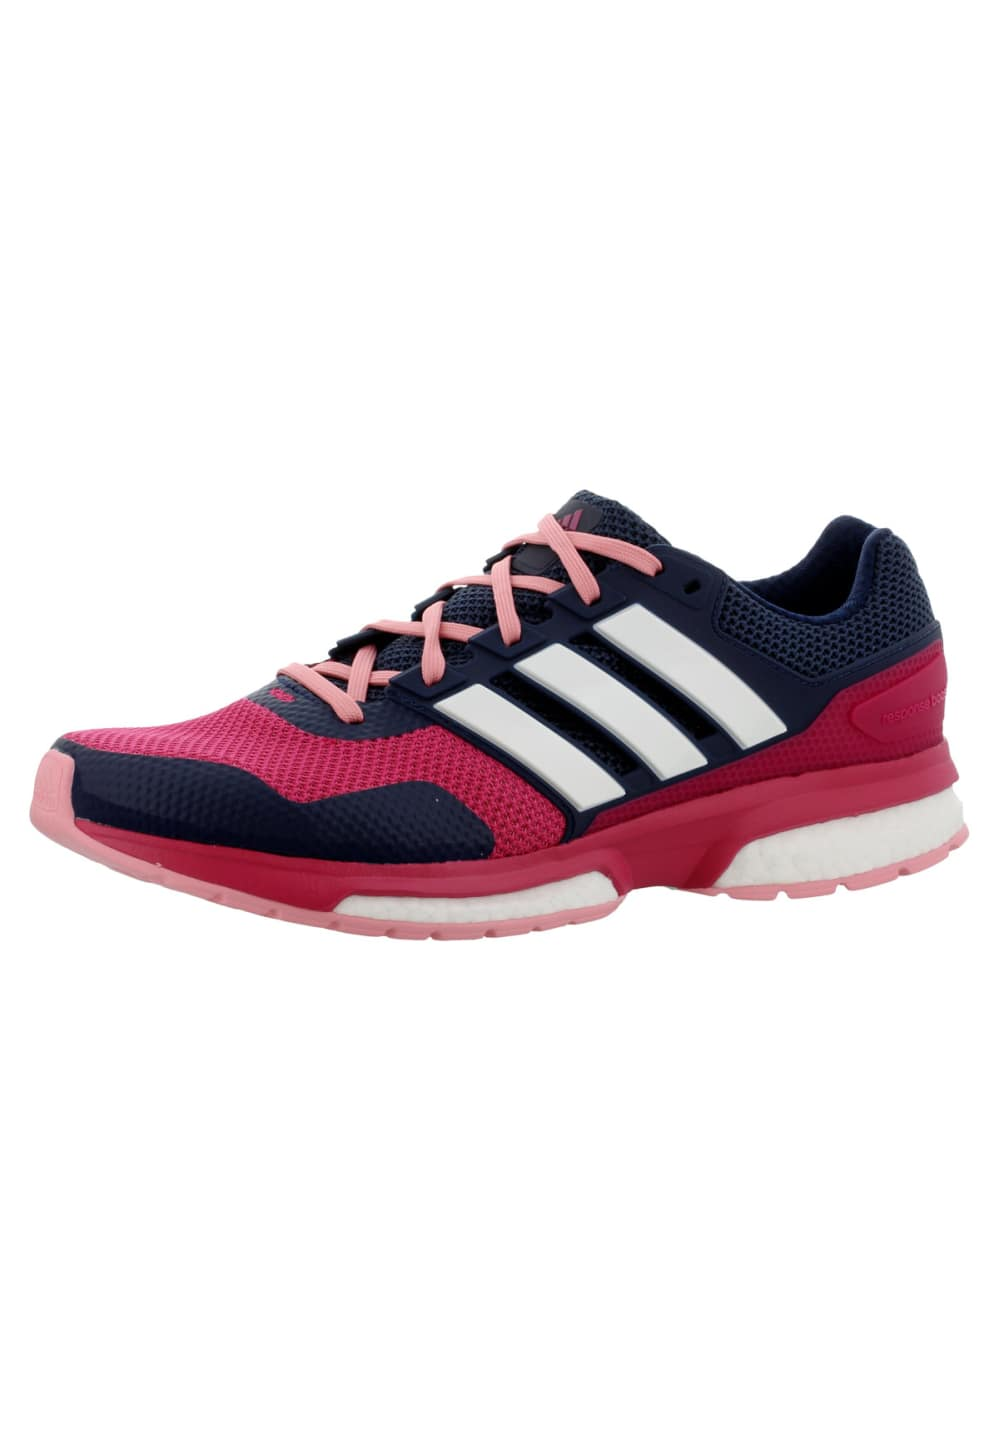 71568479997d Next. -70%. adidas. Response Boost 2 - Running shoes for Women